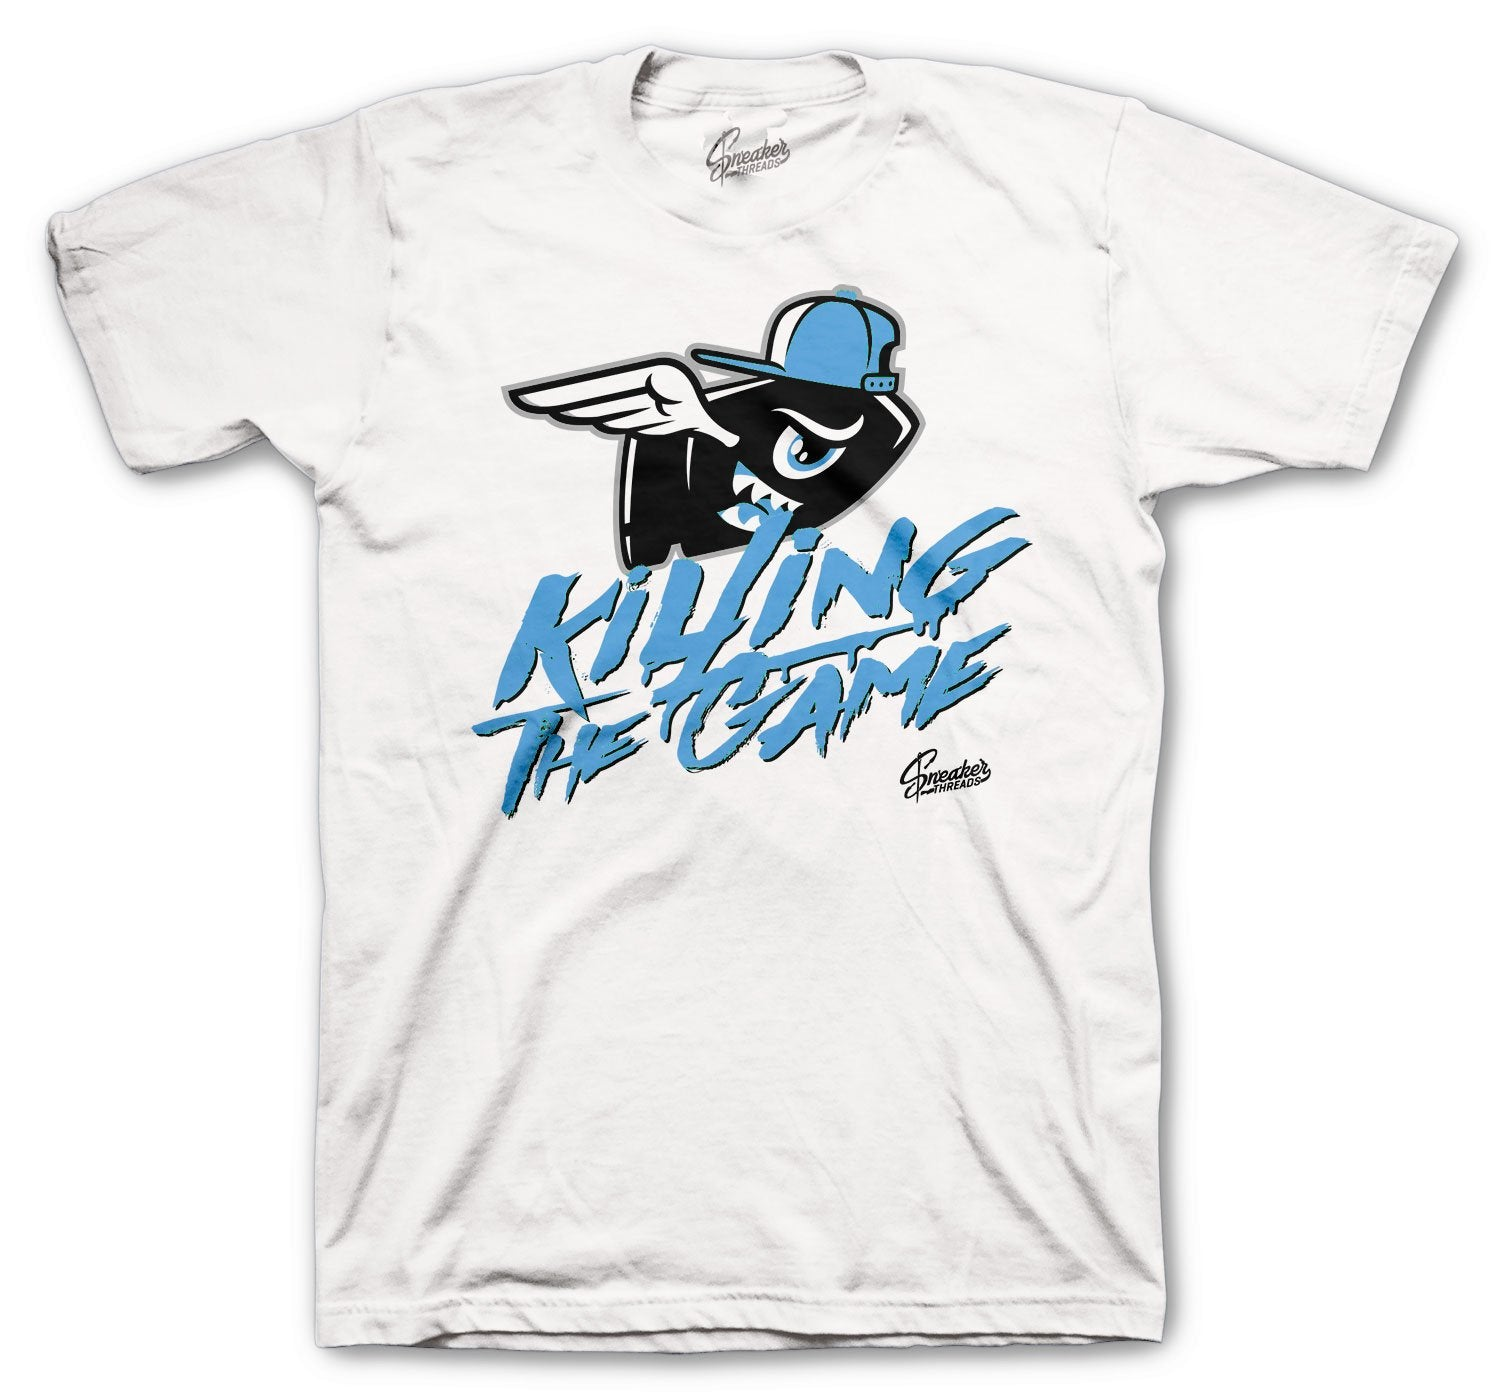 t shirt collection for men designed to match the Jordan 3 unc sneaker collection